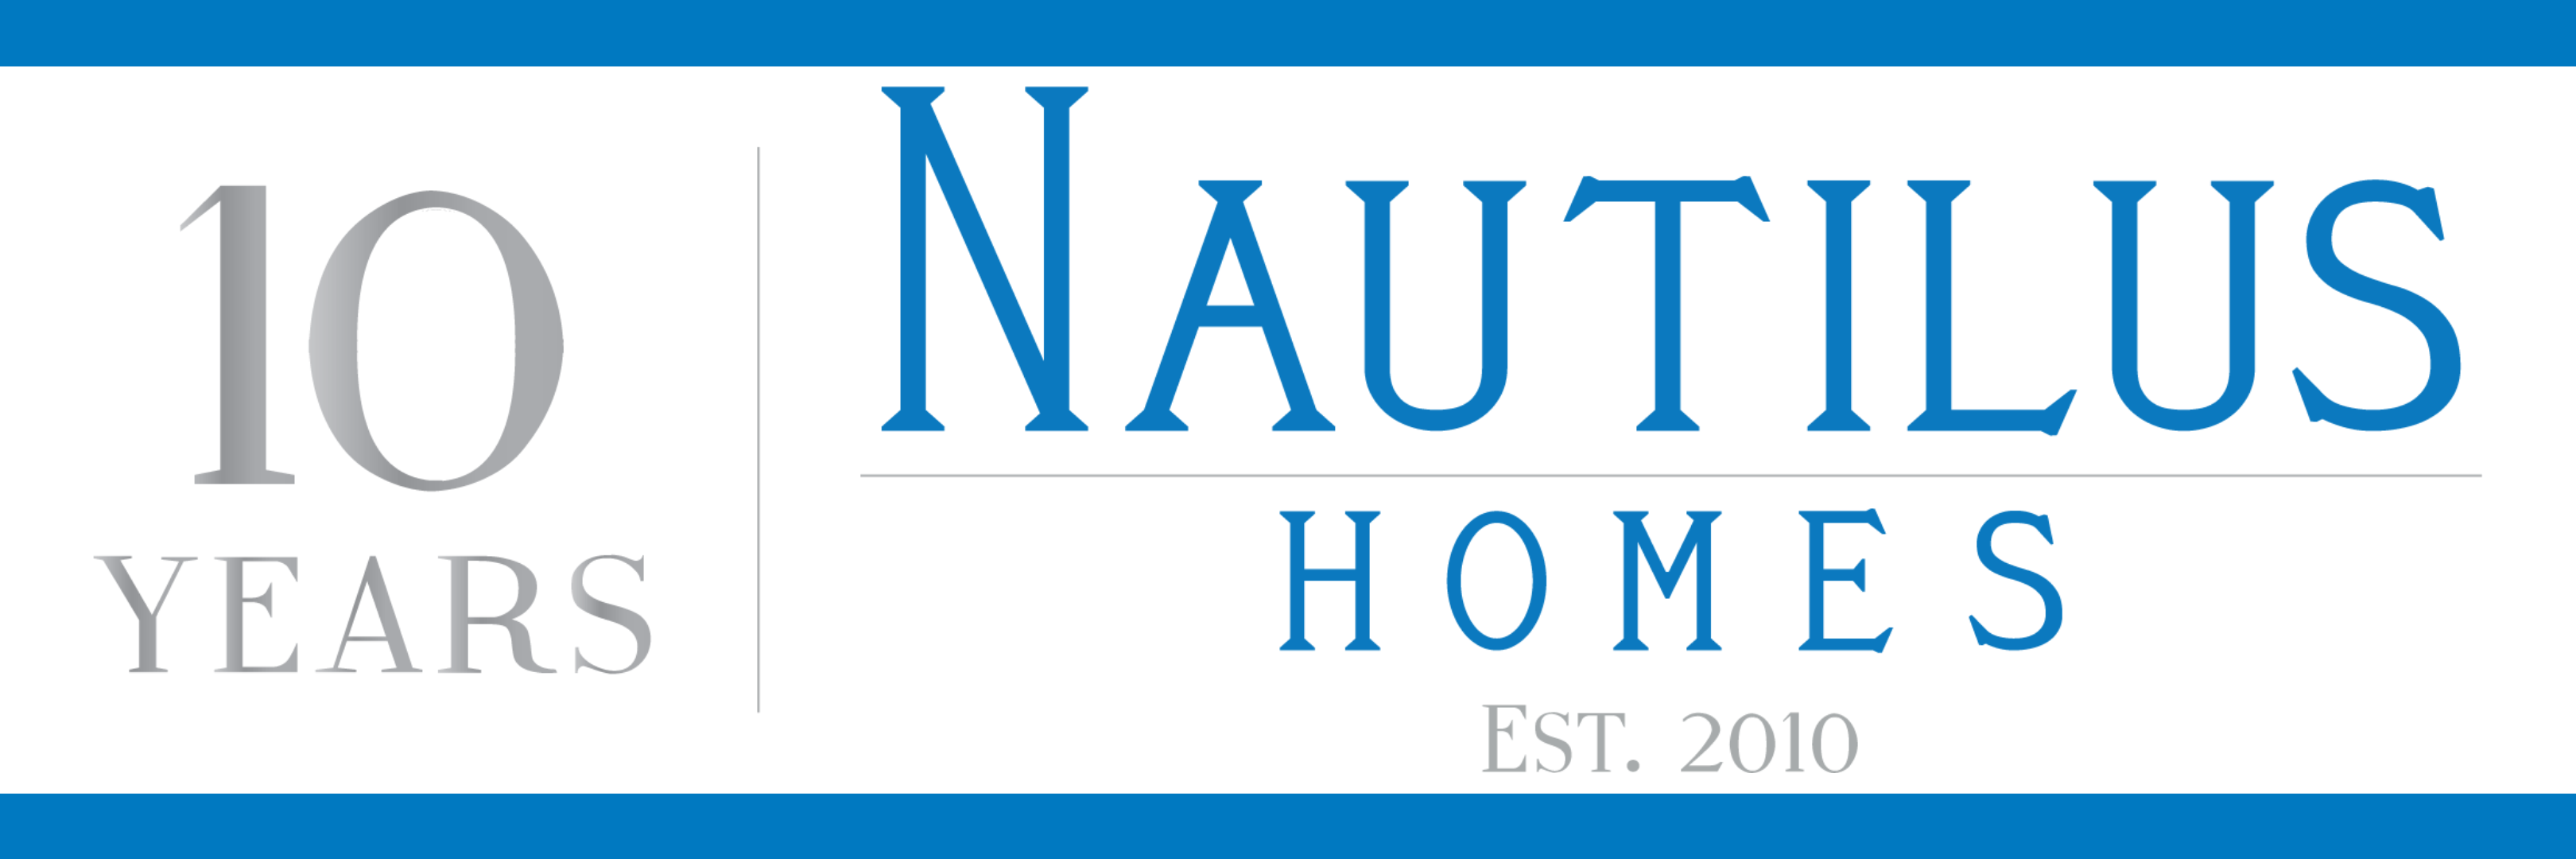 Nautilus Homes 10 Years